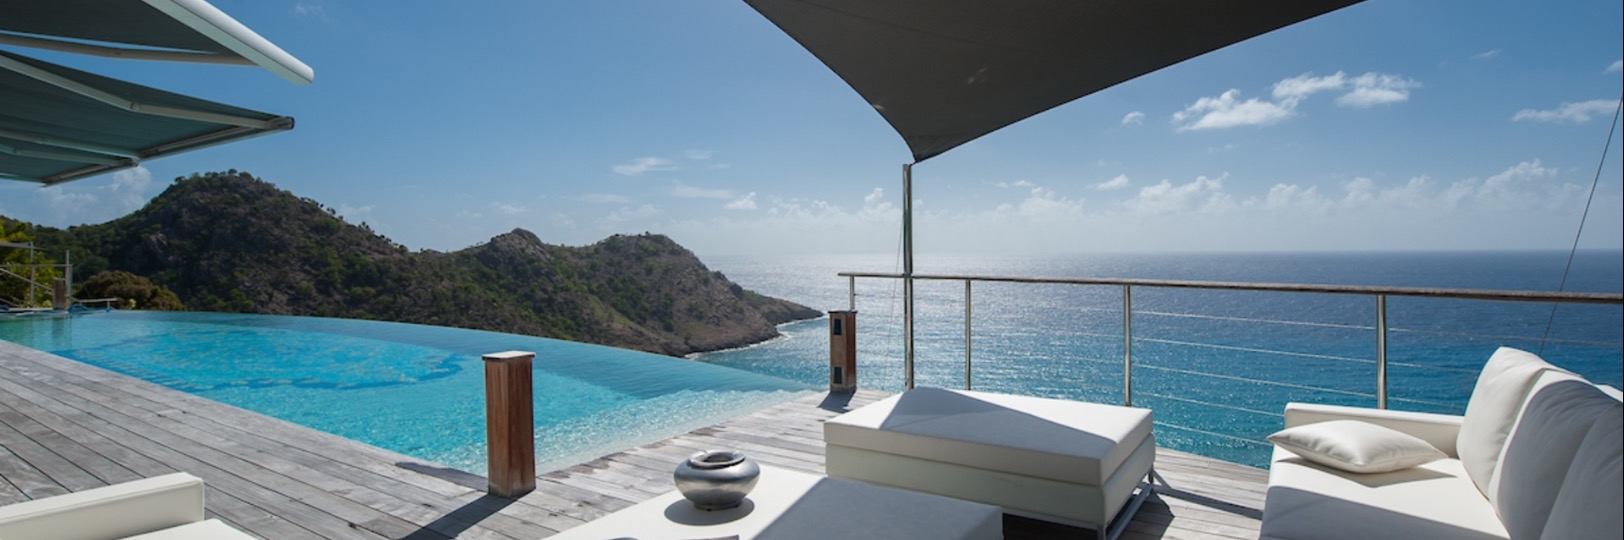 Saint Barth Villa - Gouverneur  Dream